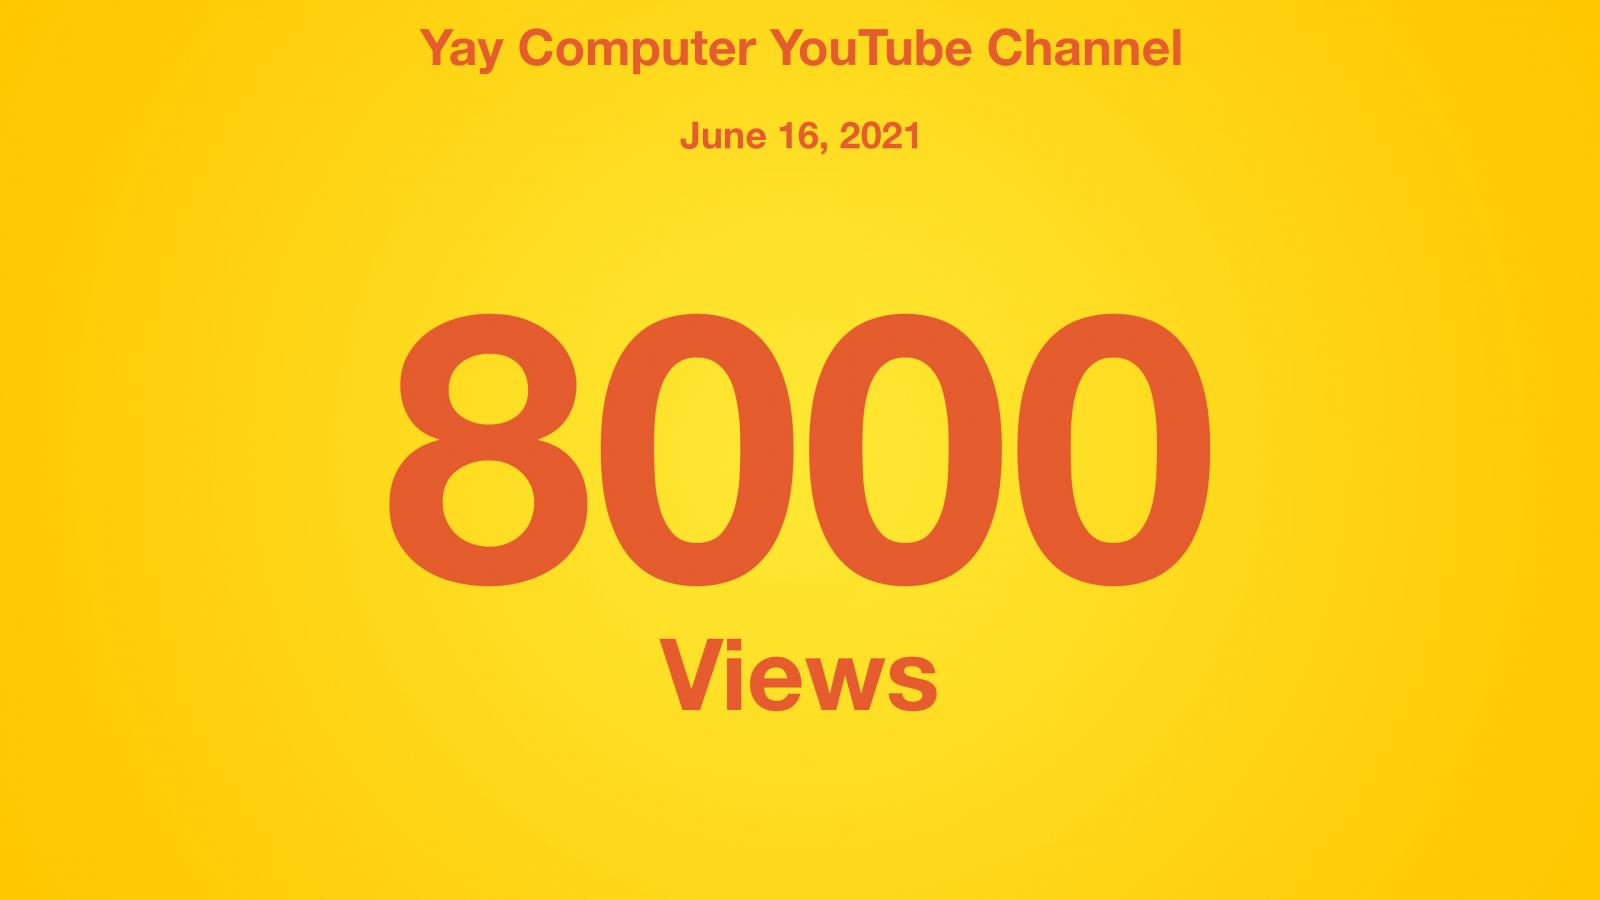 Yay Computer YouTube Channel, June 16 2021, 8000 Views